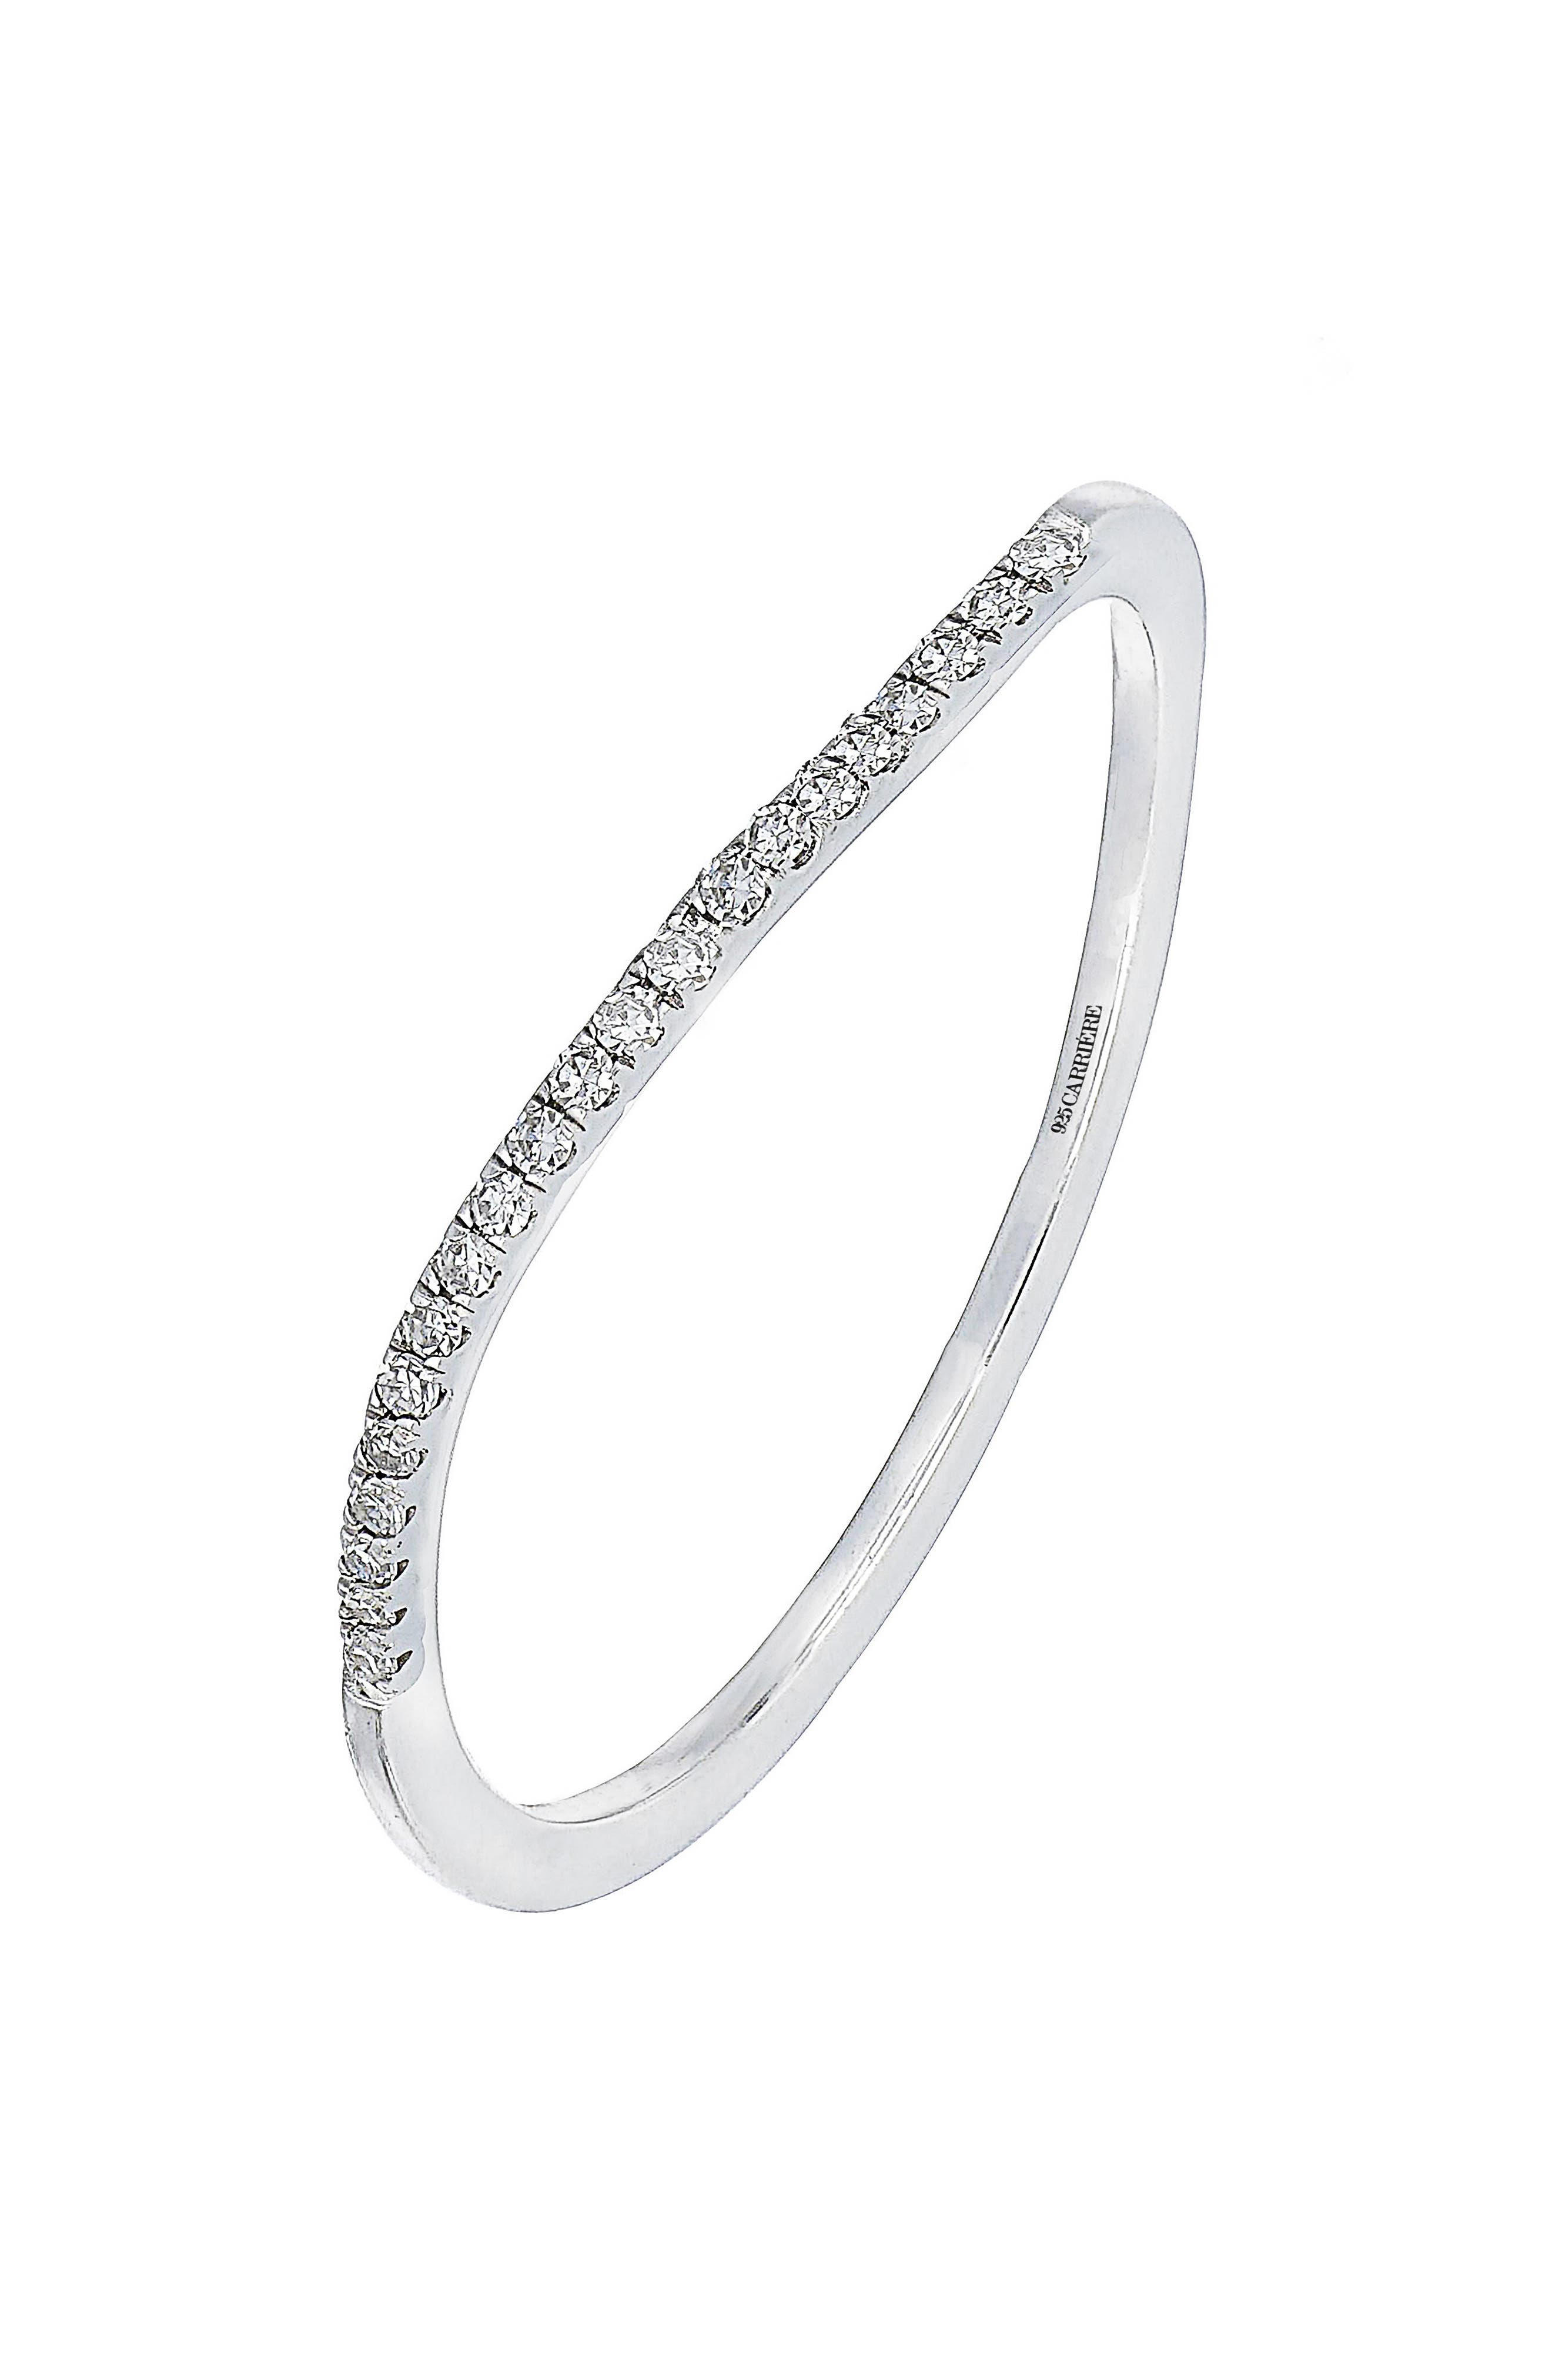 Carrière Diamond Stacking Ring,                             Main thumbnail 1, color,                             040